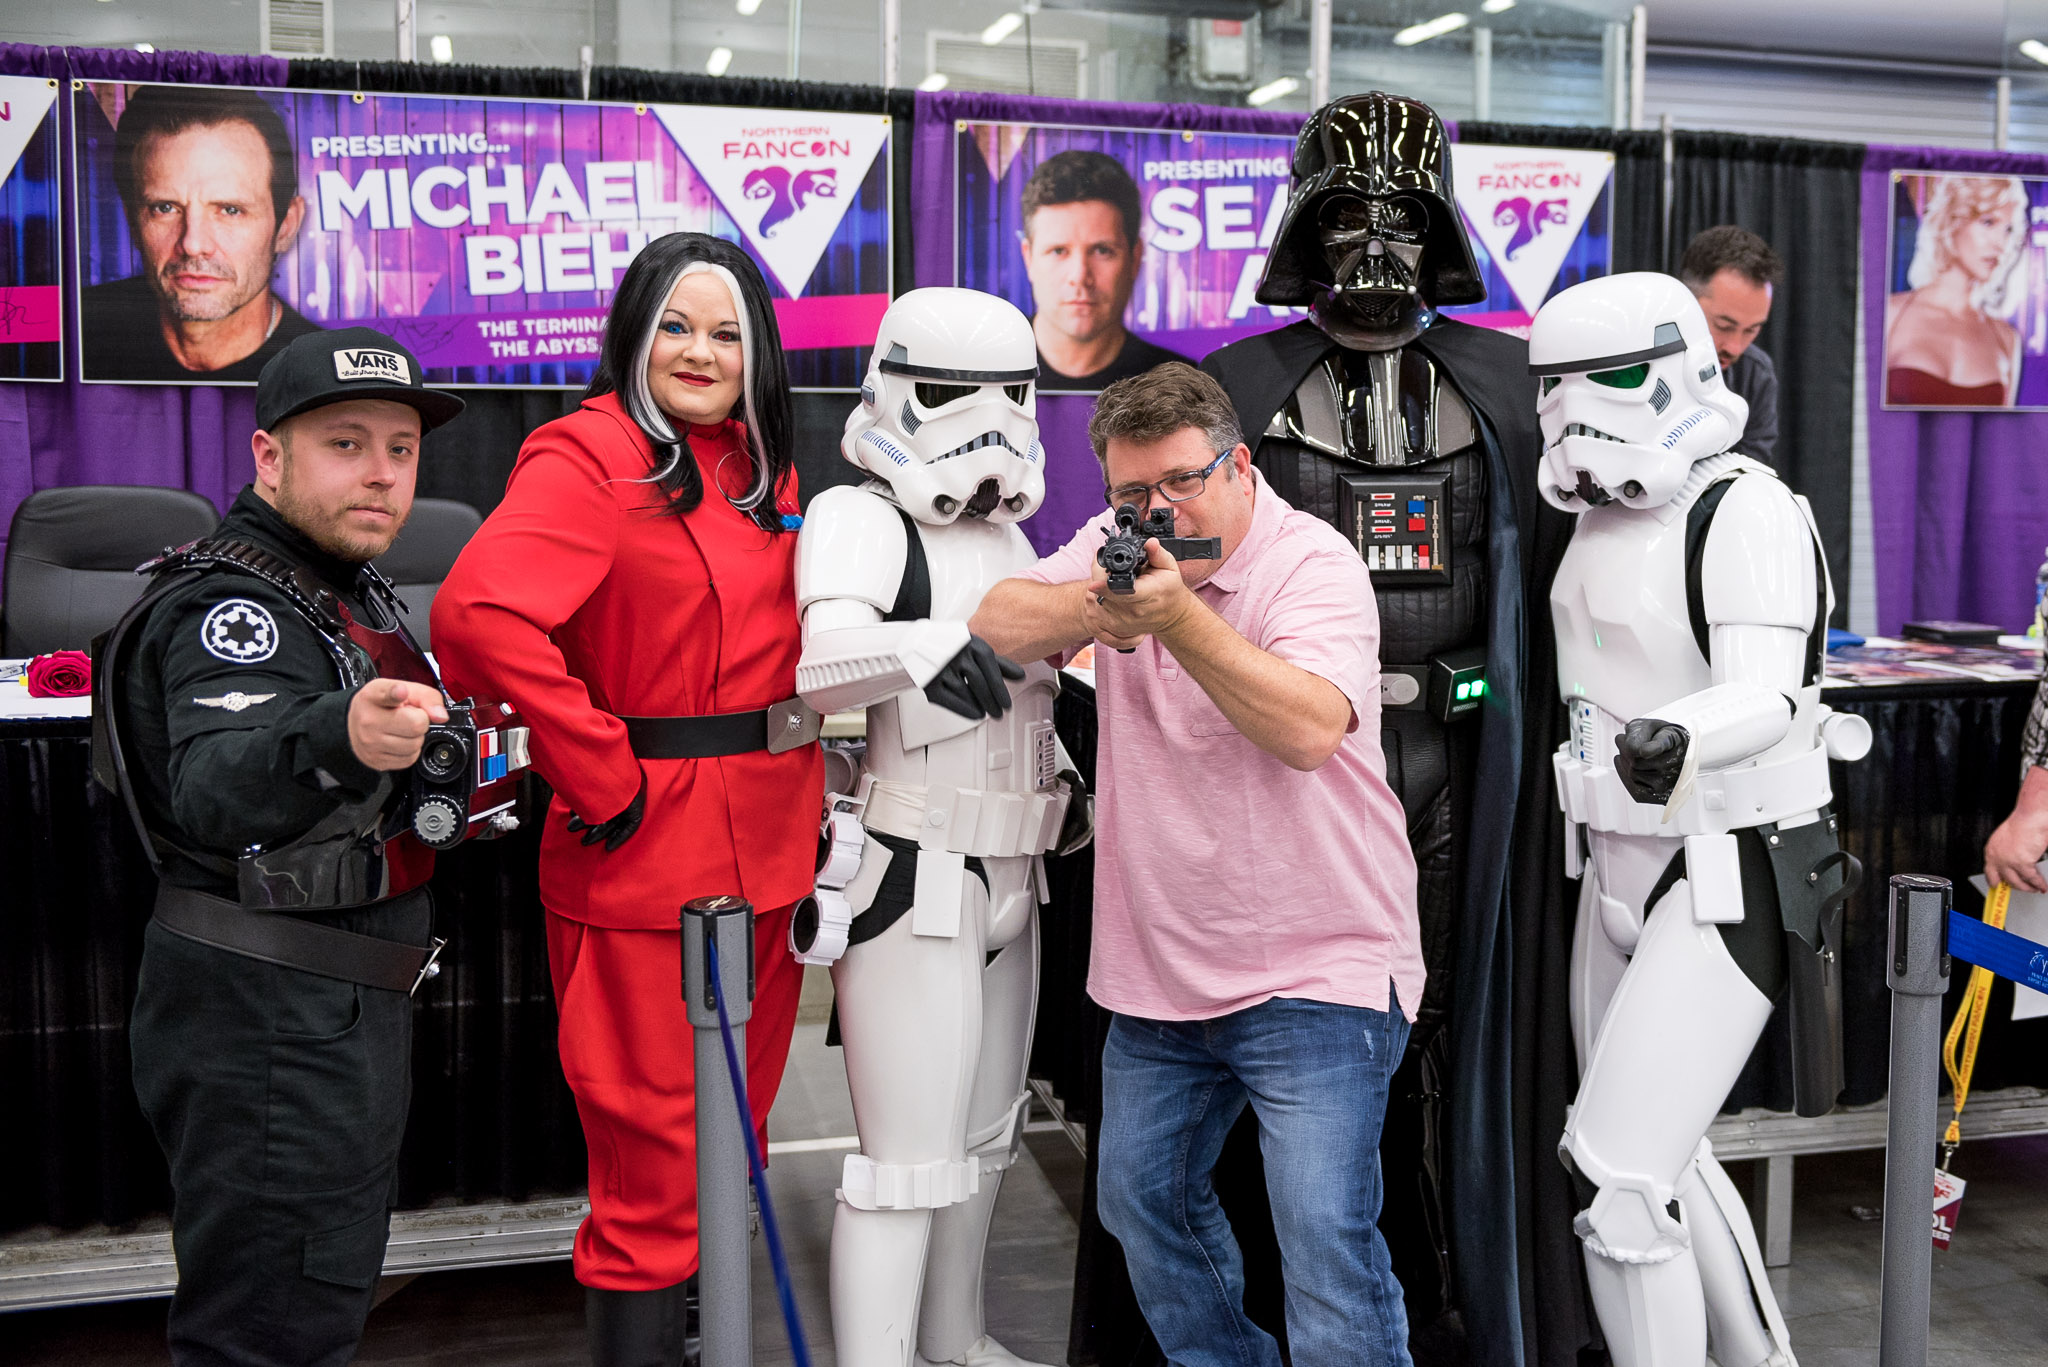 Iconic actor Sean Astin having fun at Northern FanCon photography by Christos Sagiorgis